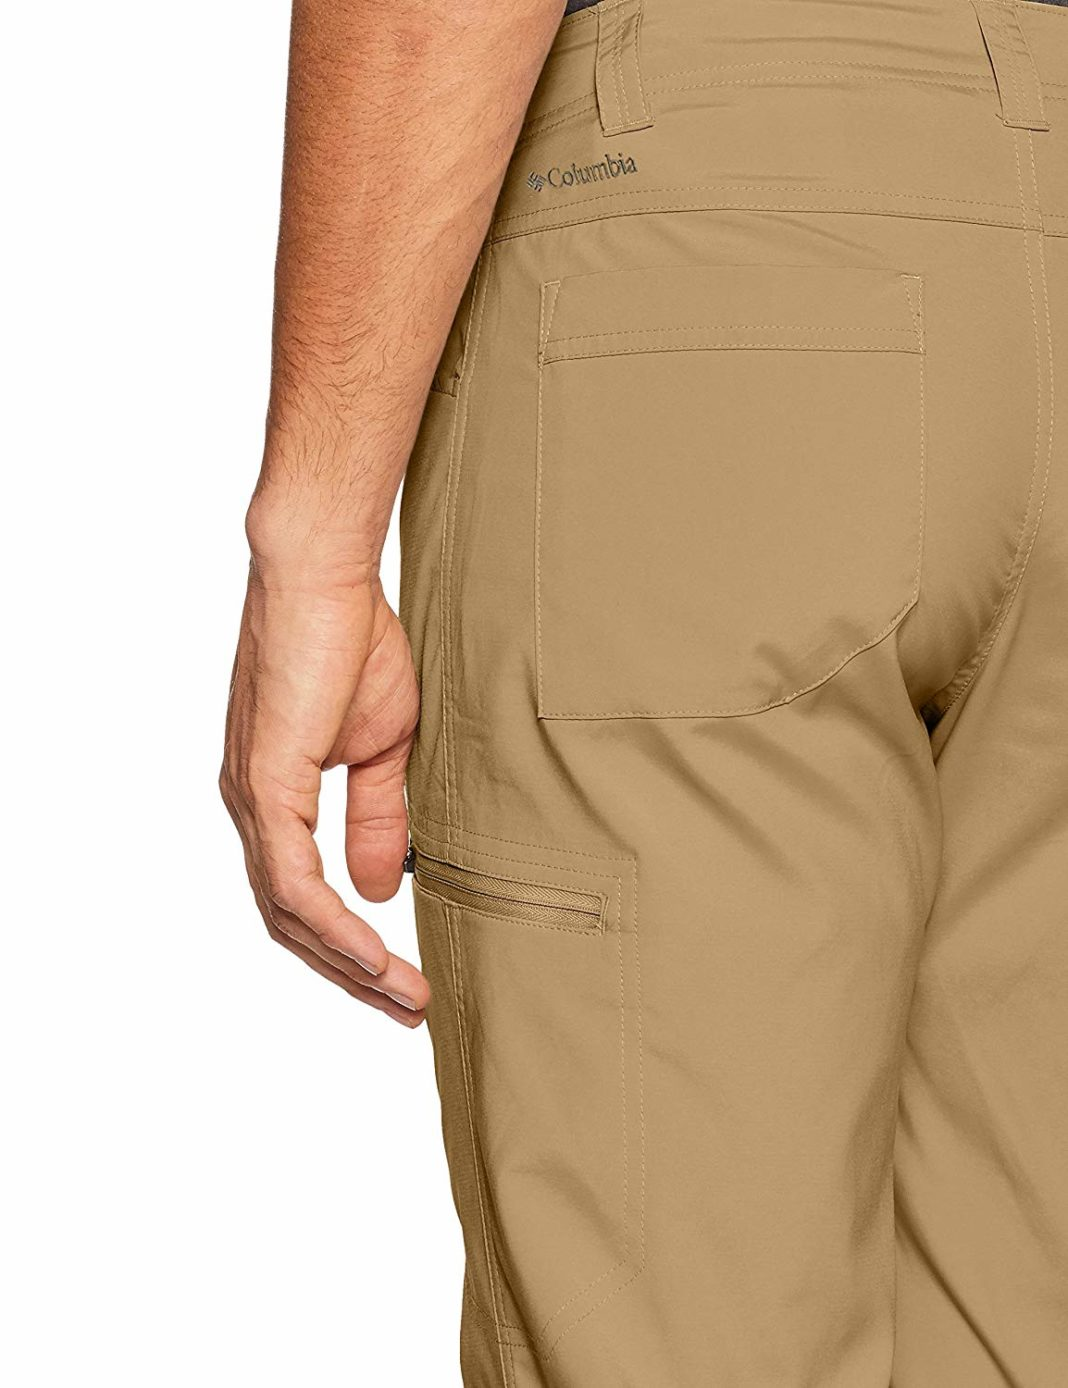 Men's Columbia Silver Ridge Stretch Pants - Adjustability